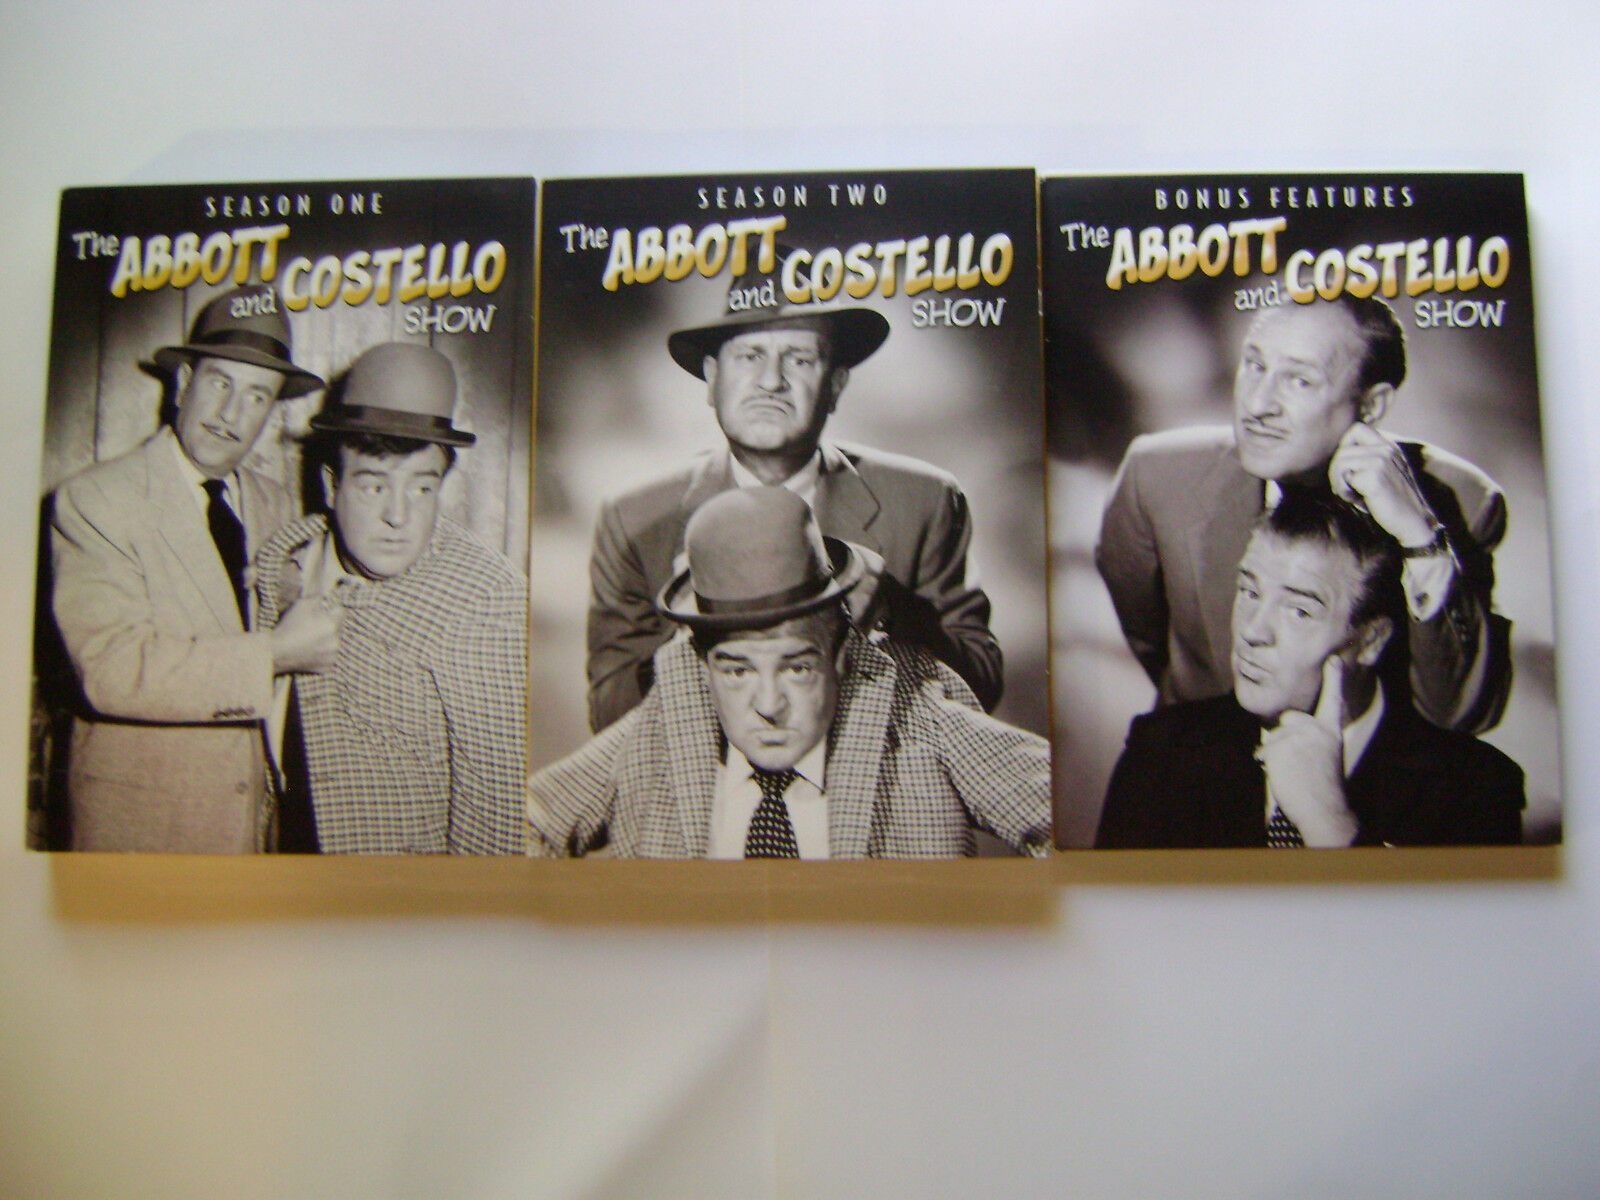 THE ABBOTT AND COSTELLO SHOW DVD COMPLETE TV SERIES SEASONS